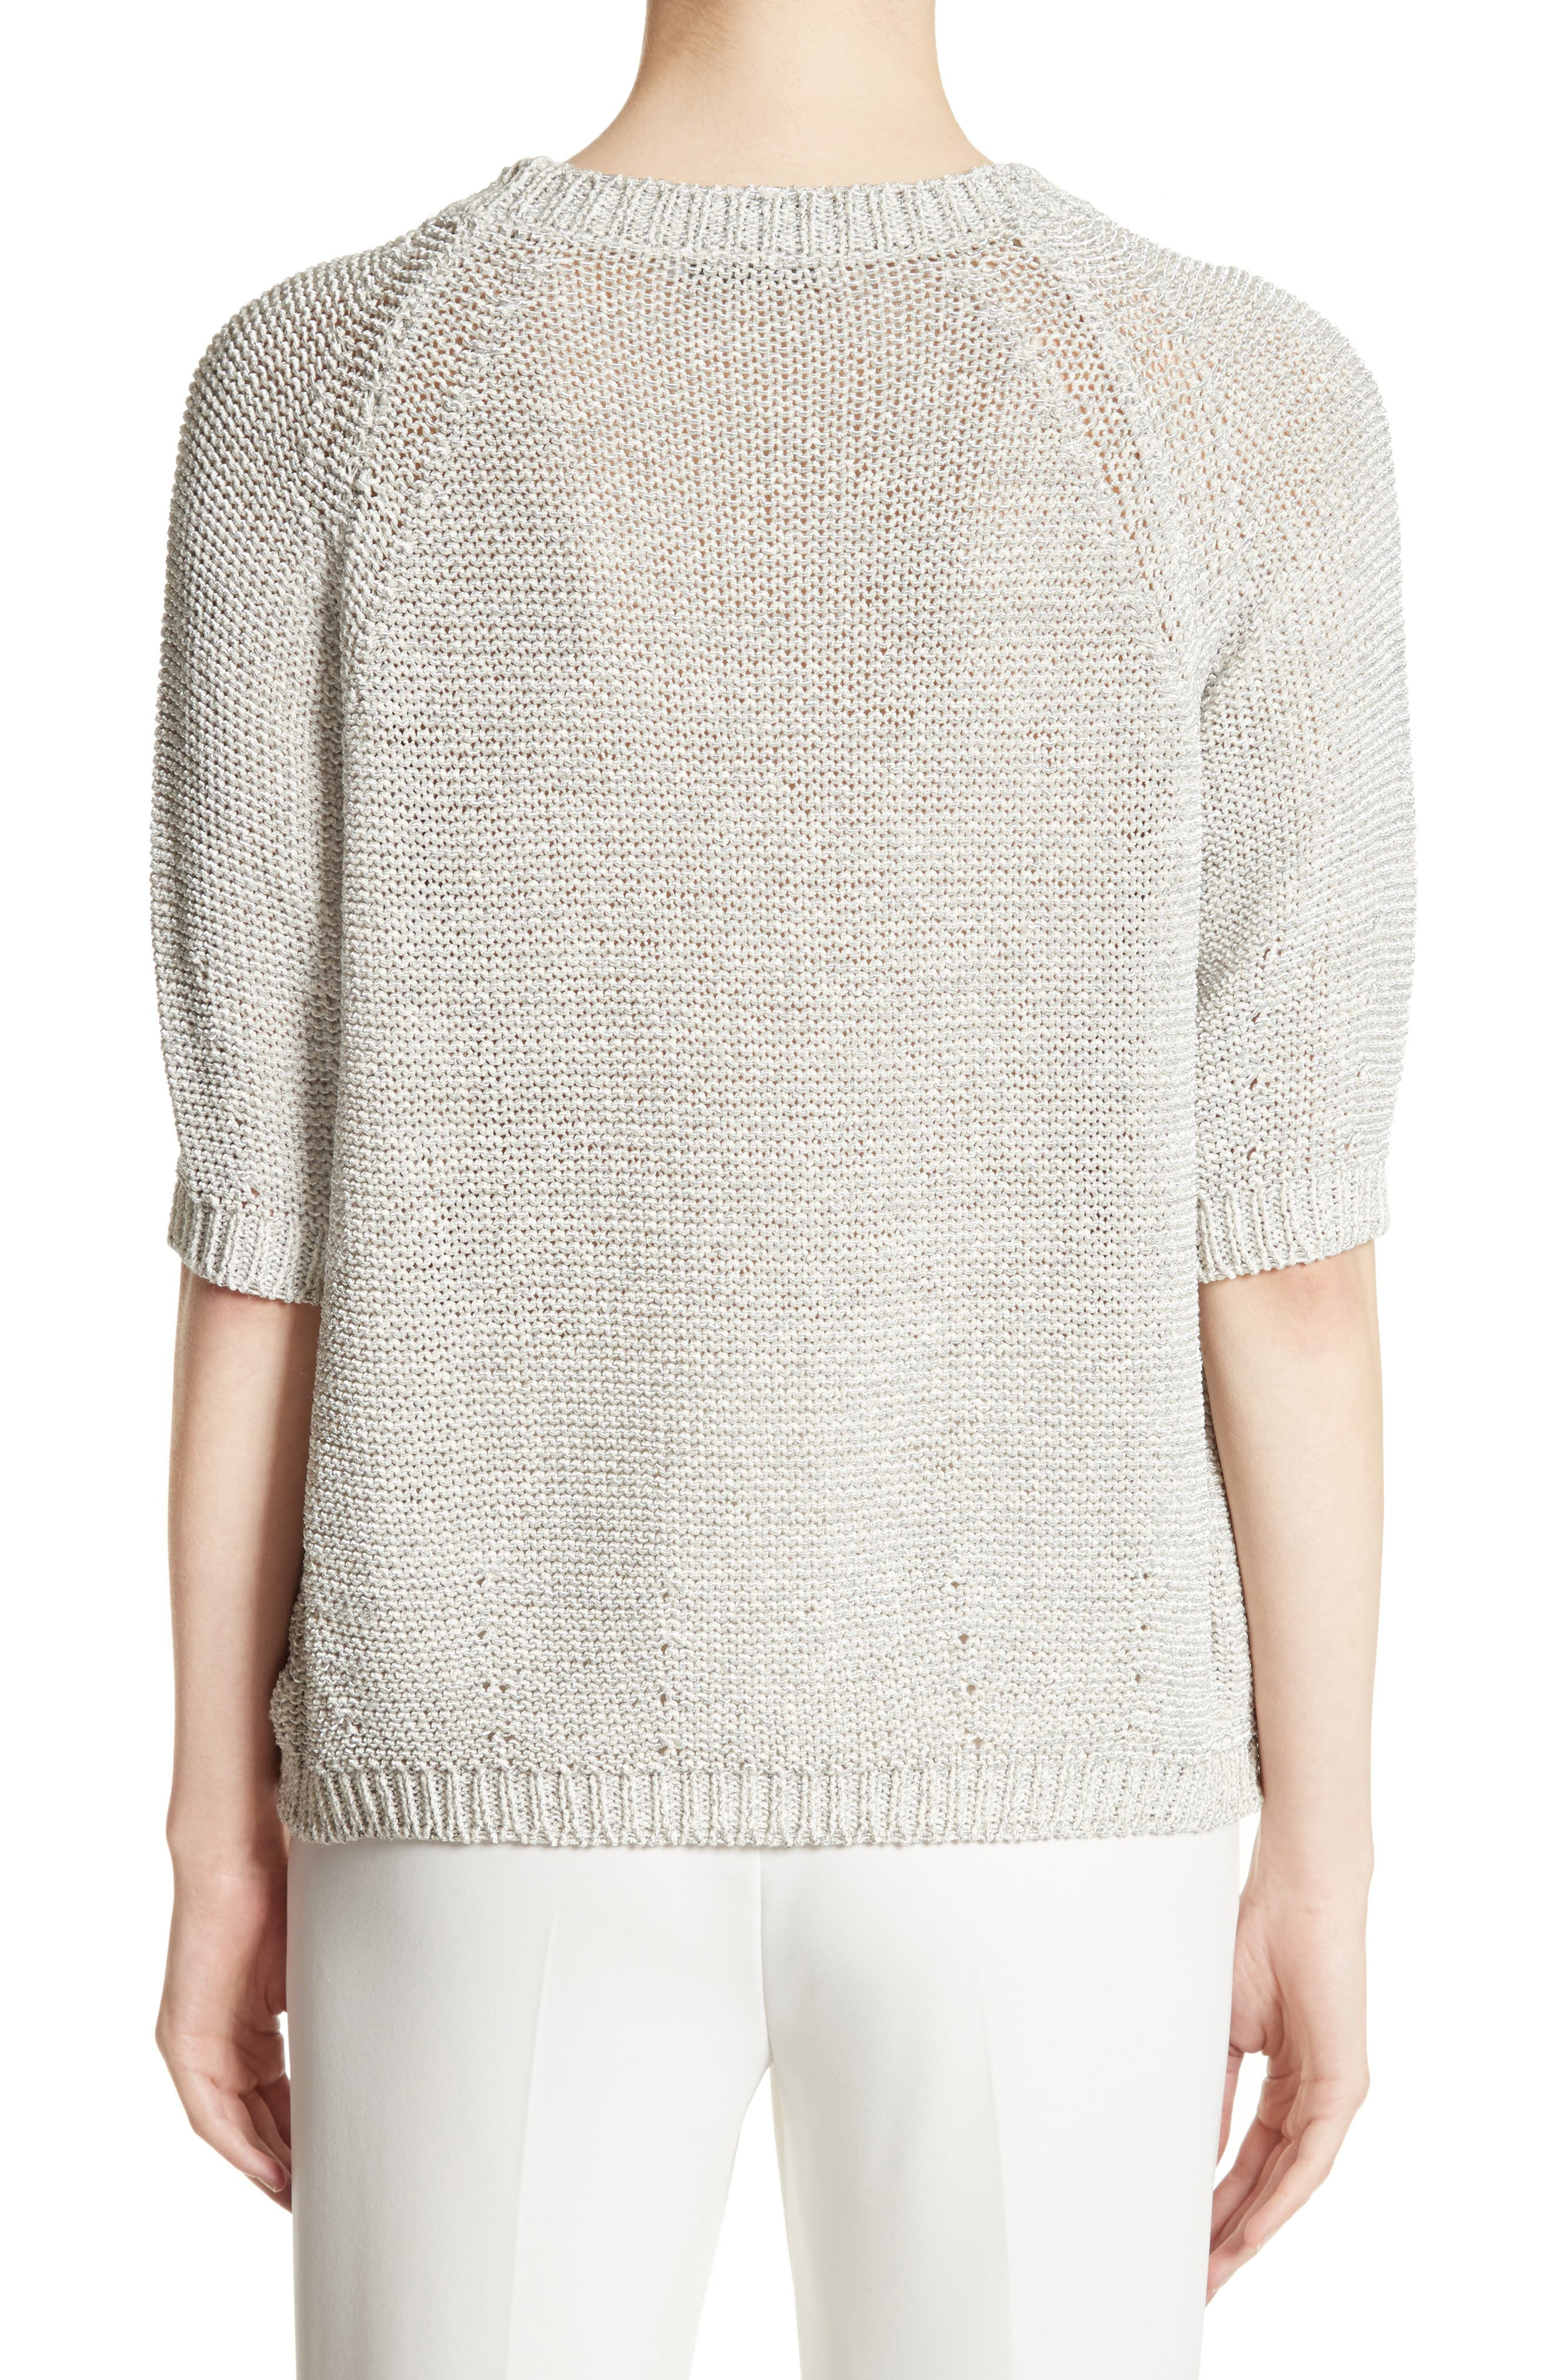 Cotton Blend Sweater,                             Alternate thumbnail 2, color,                             White